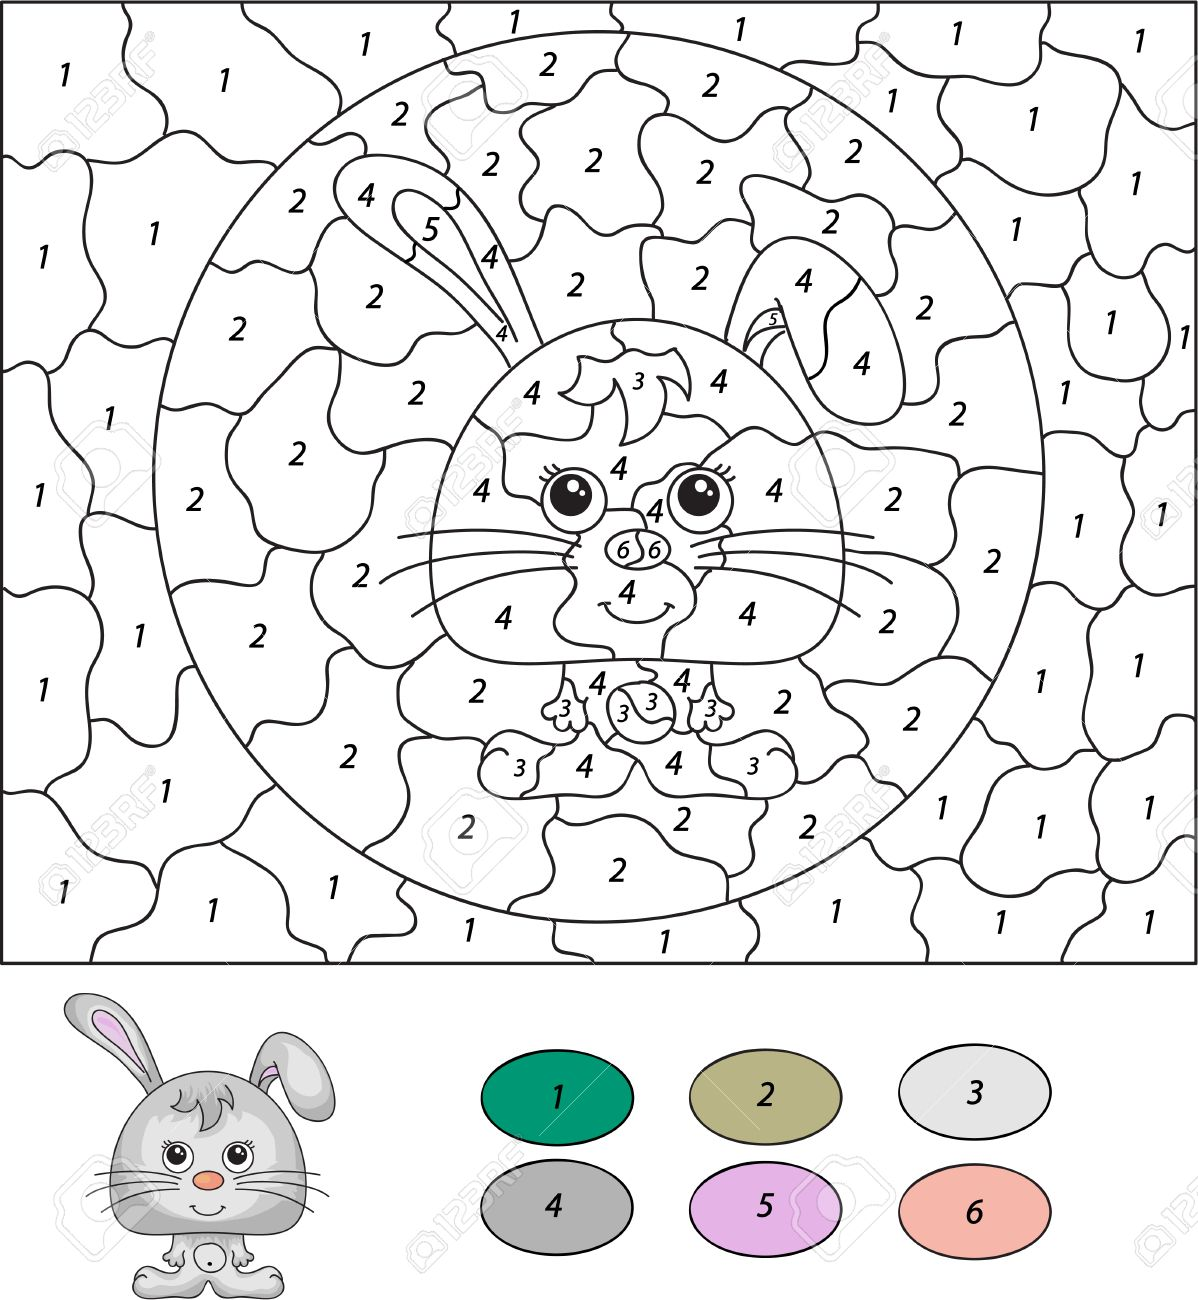 color by number educational game for kids cartoon hare or rabbit